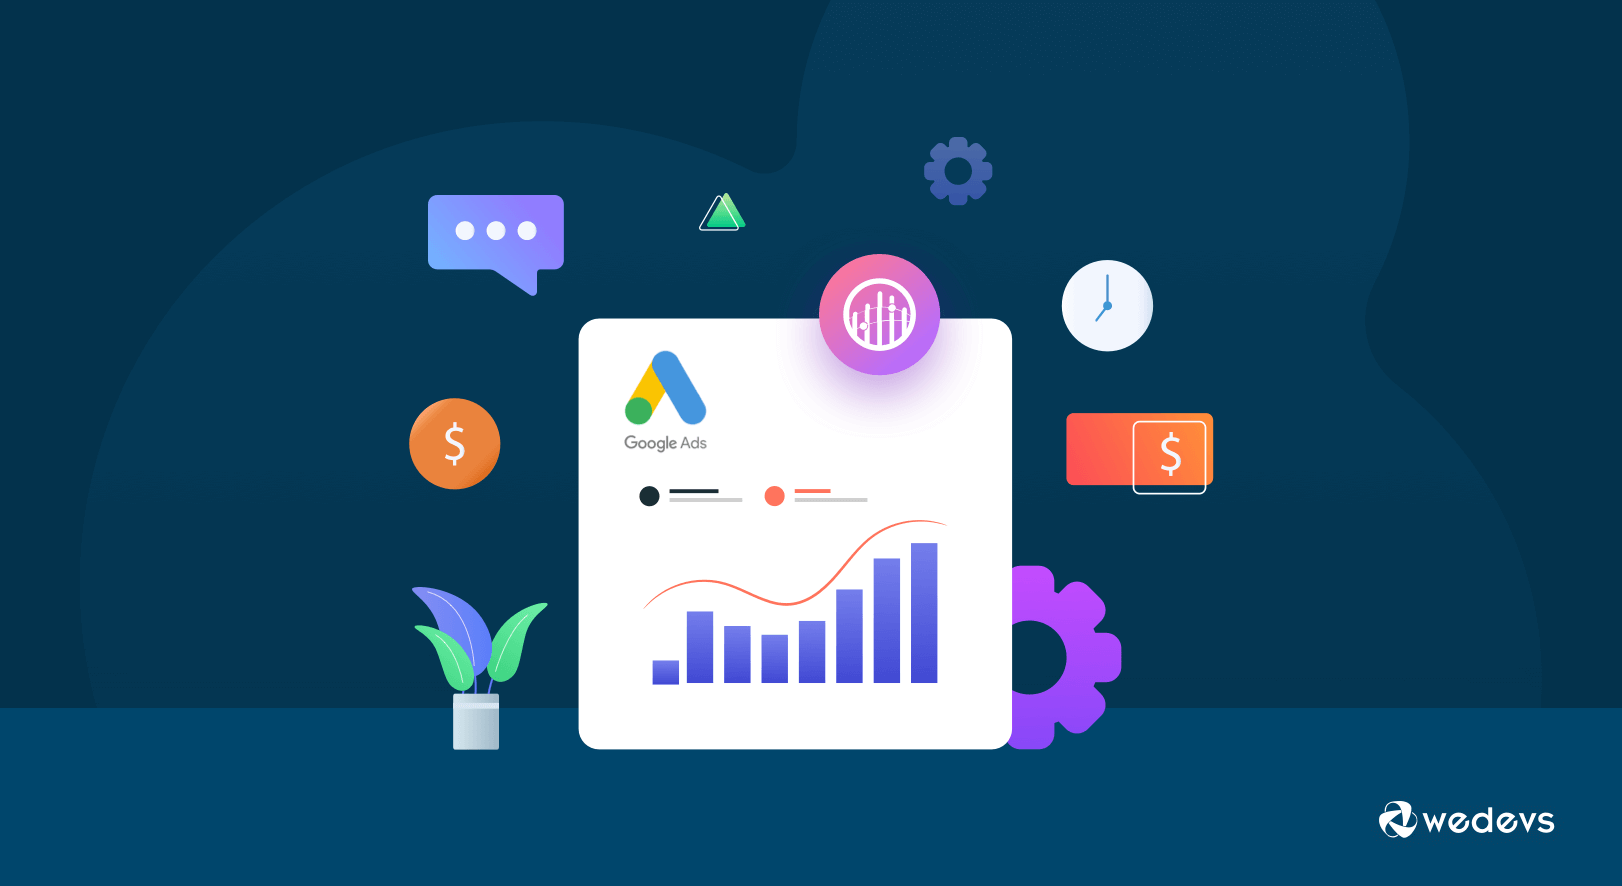 How to Setup Google Ads Conversion Tracking to Your WooCommerce Website